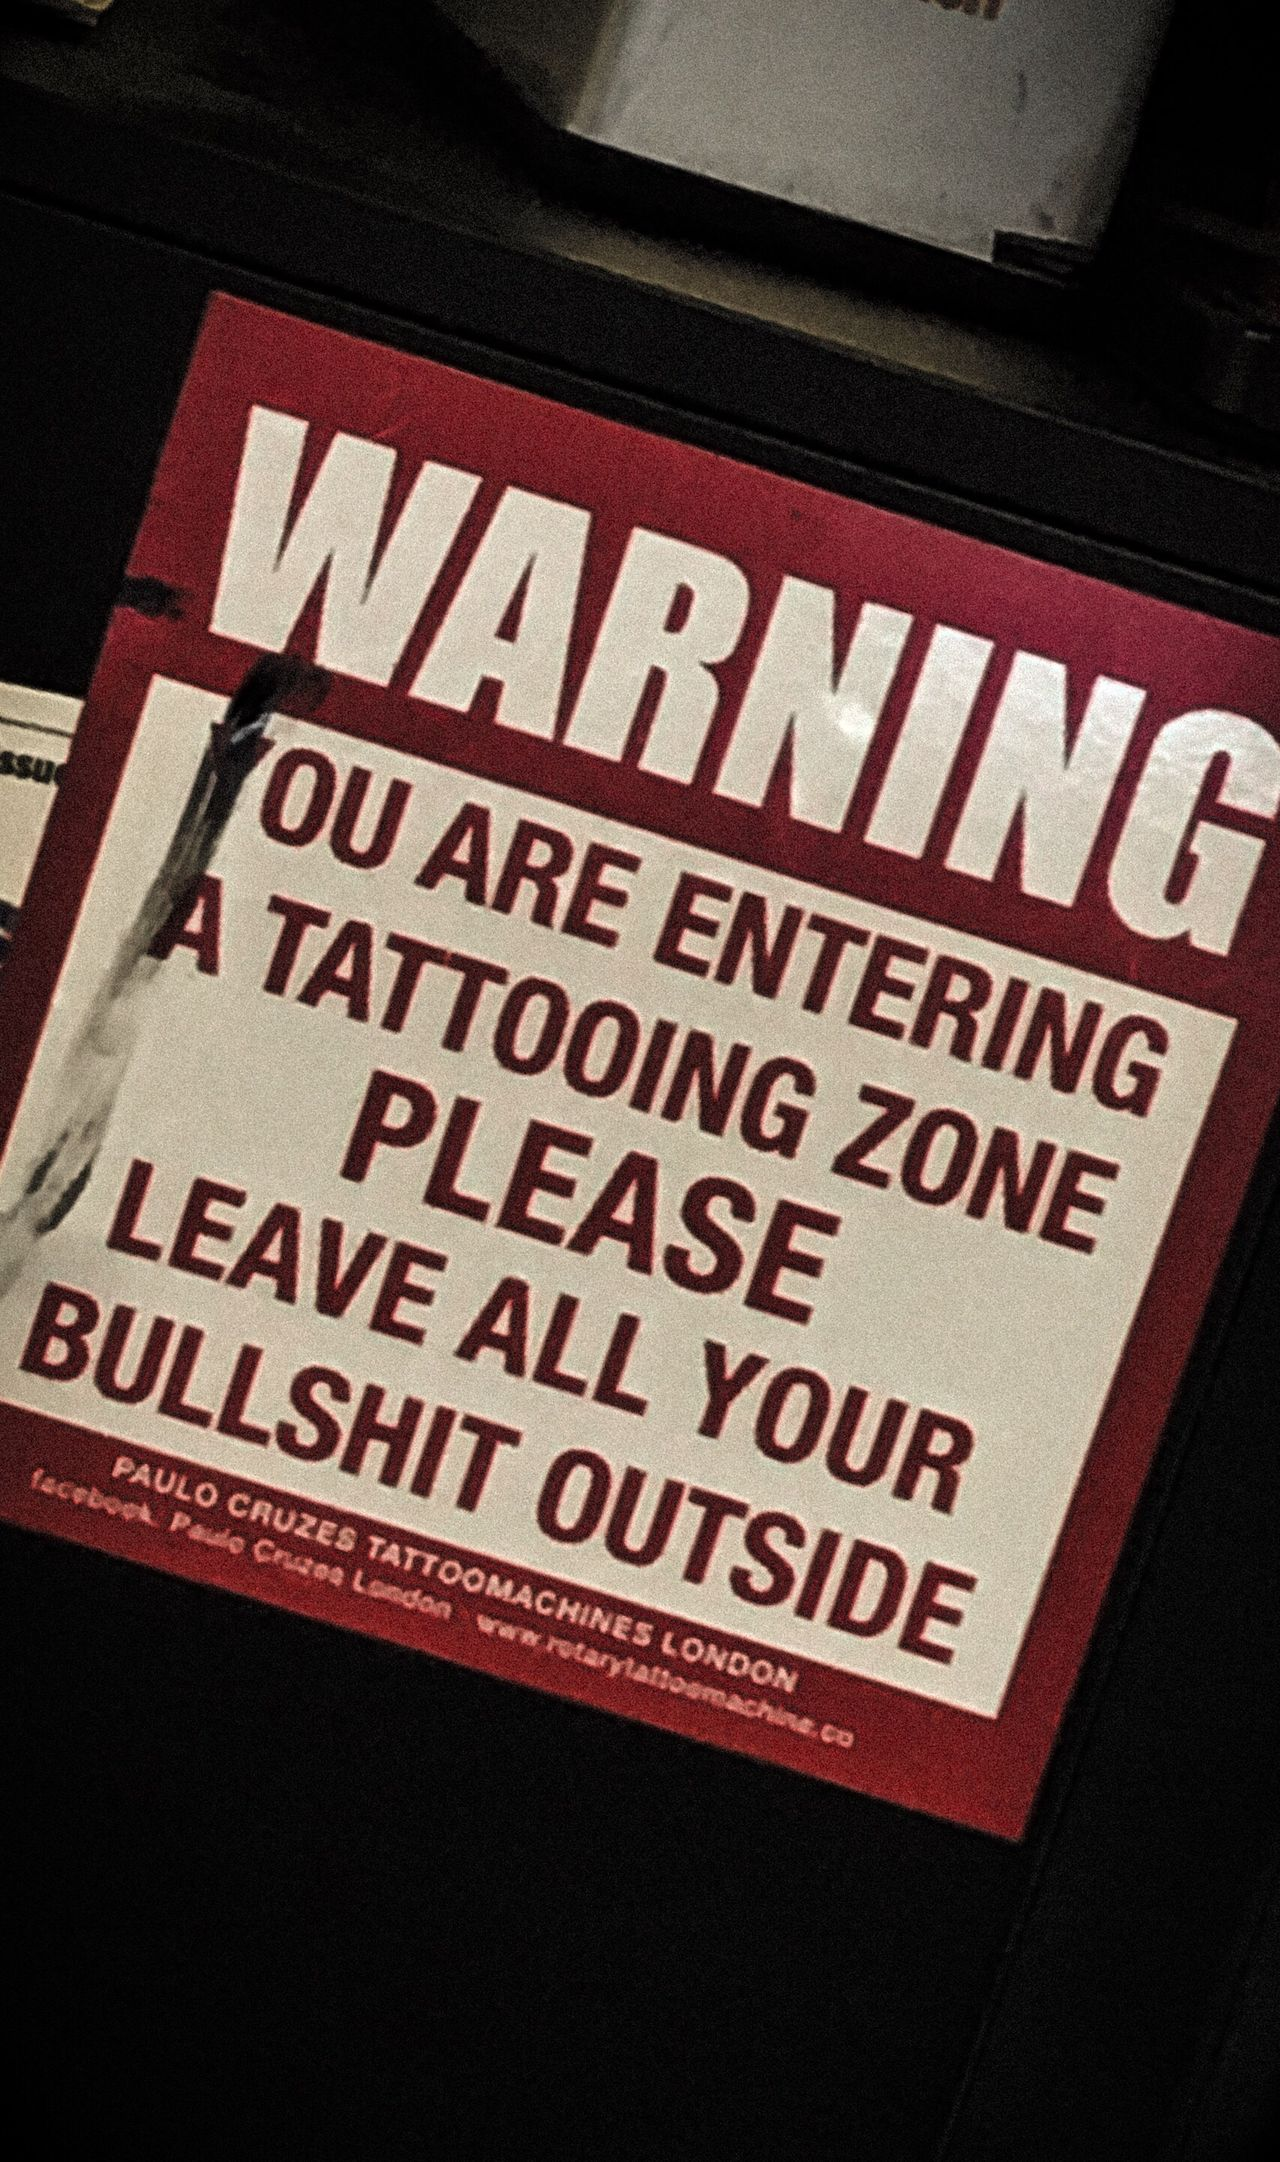 porque tattoos are life. Text Tattoo Sign Sticker Tattoo Shop Nothing But Ink